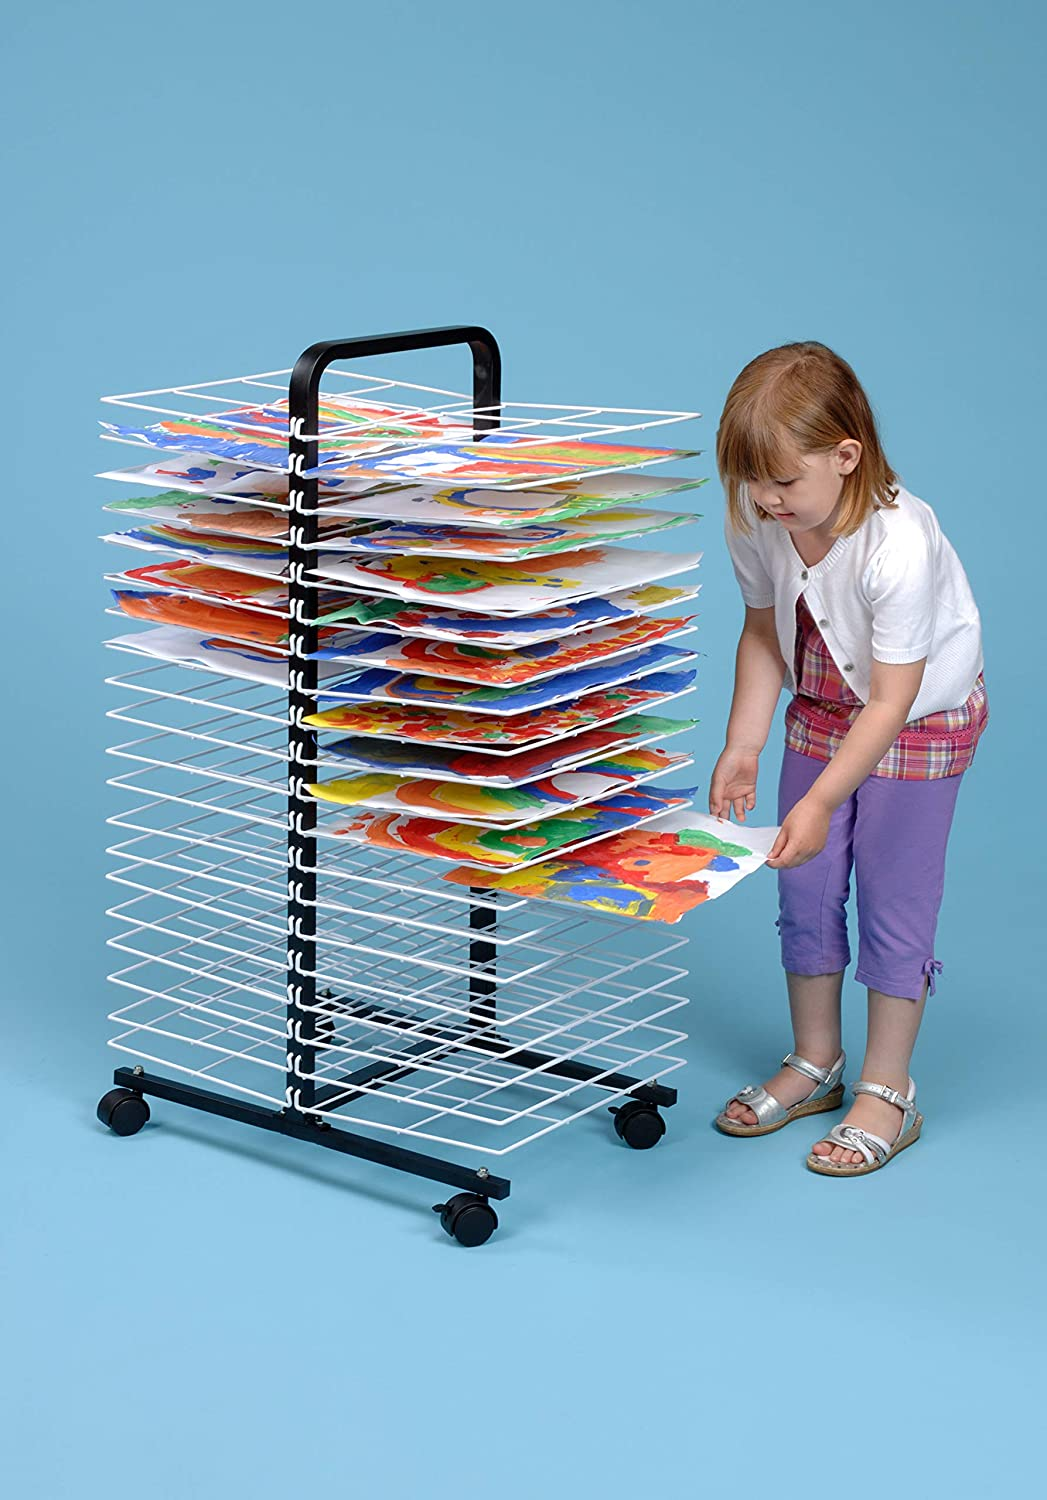 American Educational Products A-C1168 Drying Rack on Wheels 7 Height 18 Wide 40 Shelf 48 Length